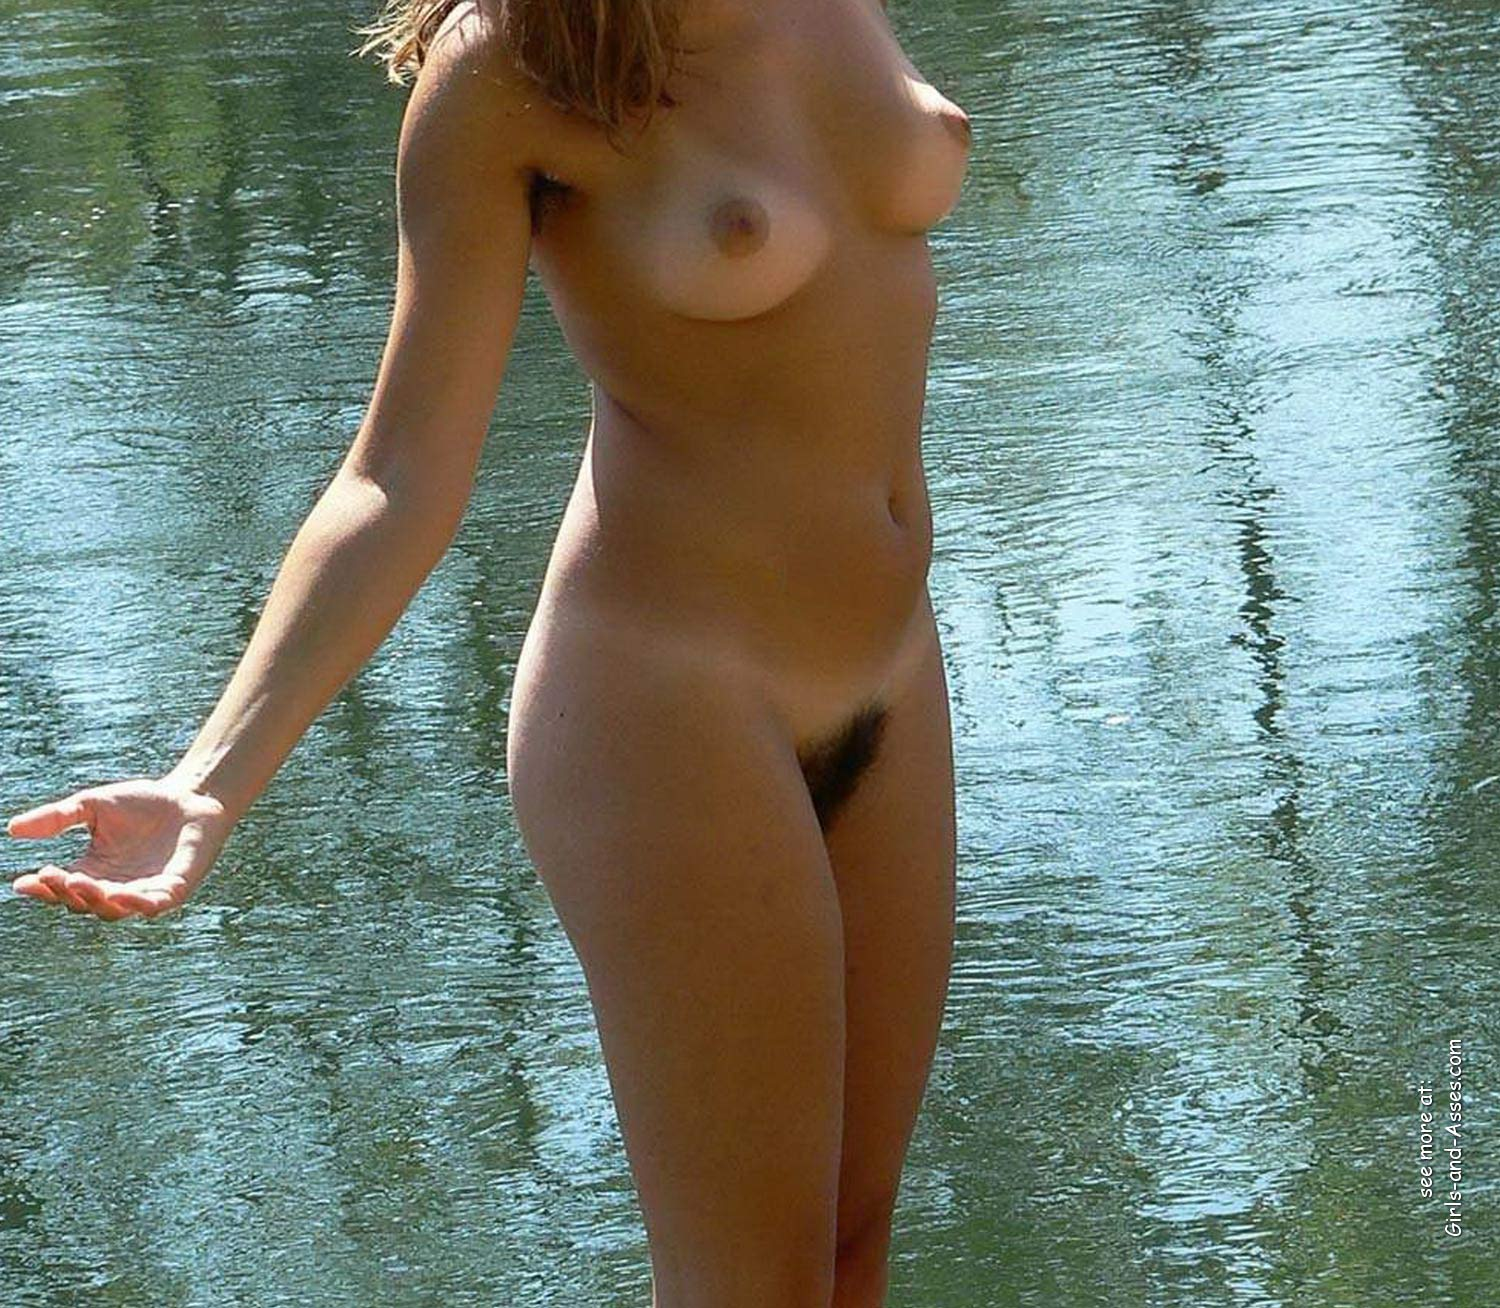 cute naked girl on the river photo 08017